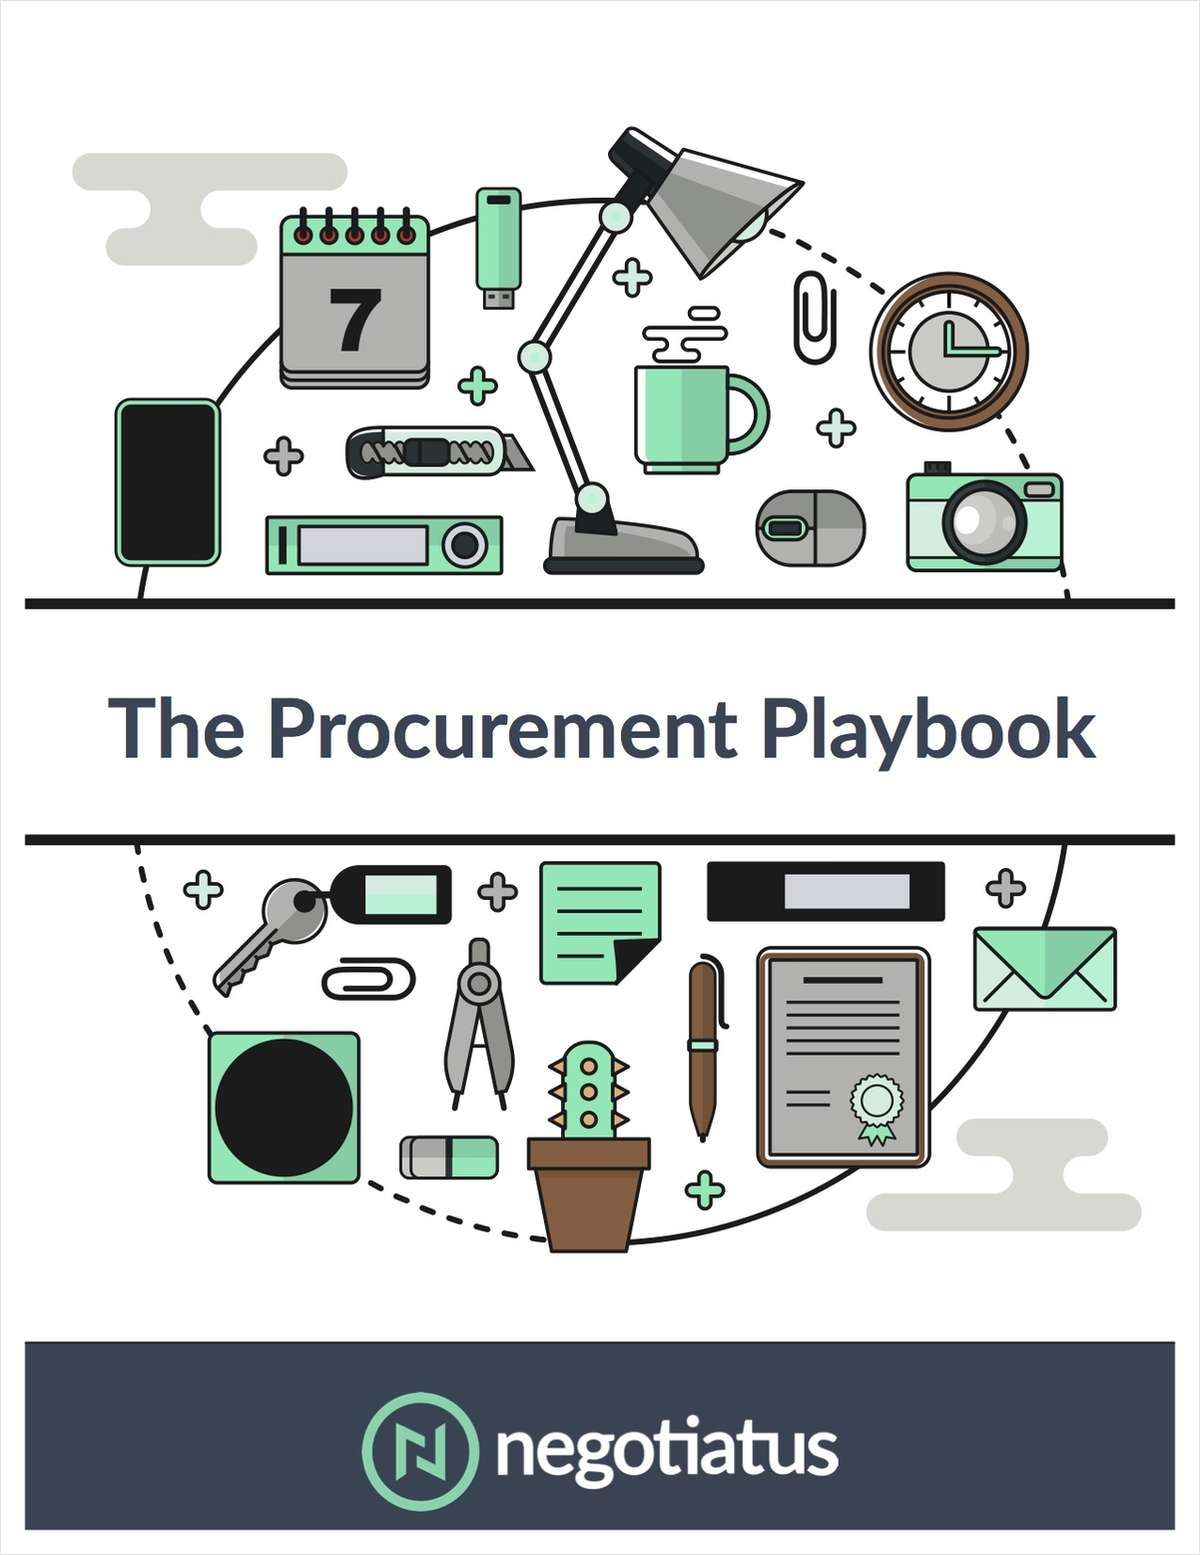 The Procurement Playbook: How to Manage Office Supply Purchasing